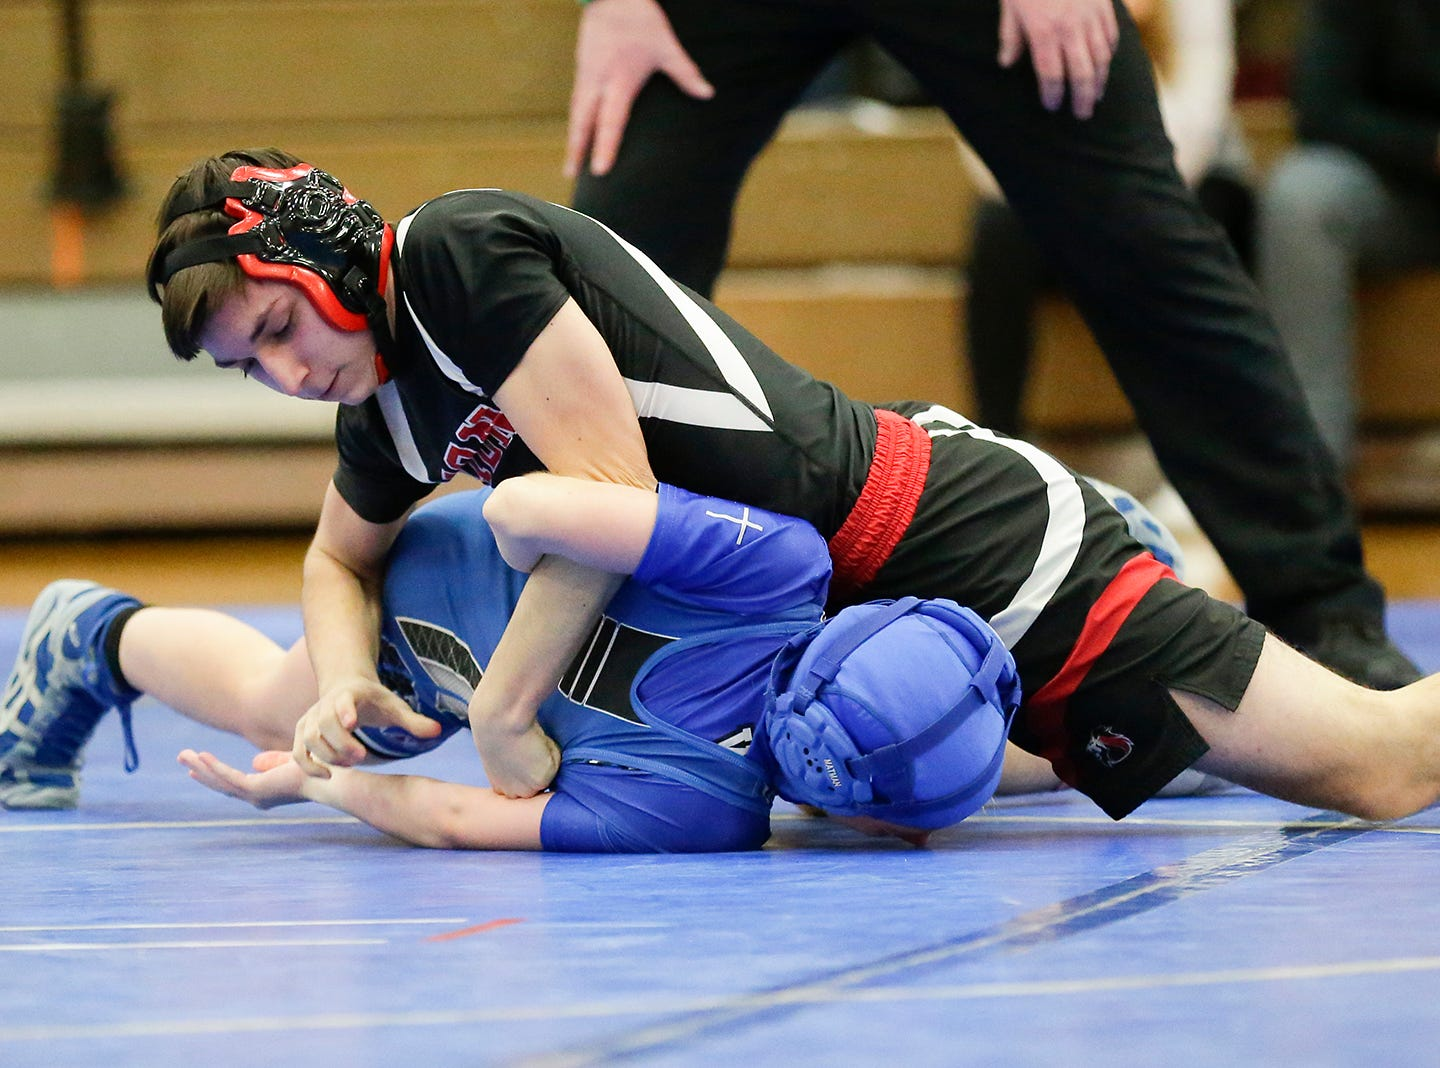 Winnebago Lutheran Academy's Ashleigh Olson wrestles Carlos Lopez of Lomira High School in the 106 pound weight class Thursday, January 17, 2019 in Fond du Lac. Lopez won by a pin and Lomira won the meet 51-22. Doug Raflik/USA TODAY NETWORK-Wisconsin